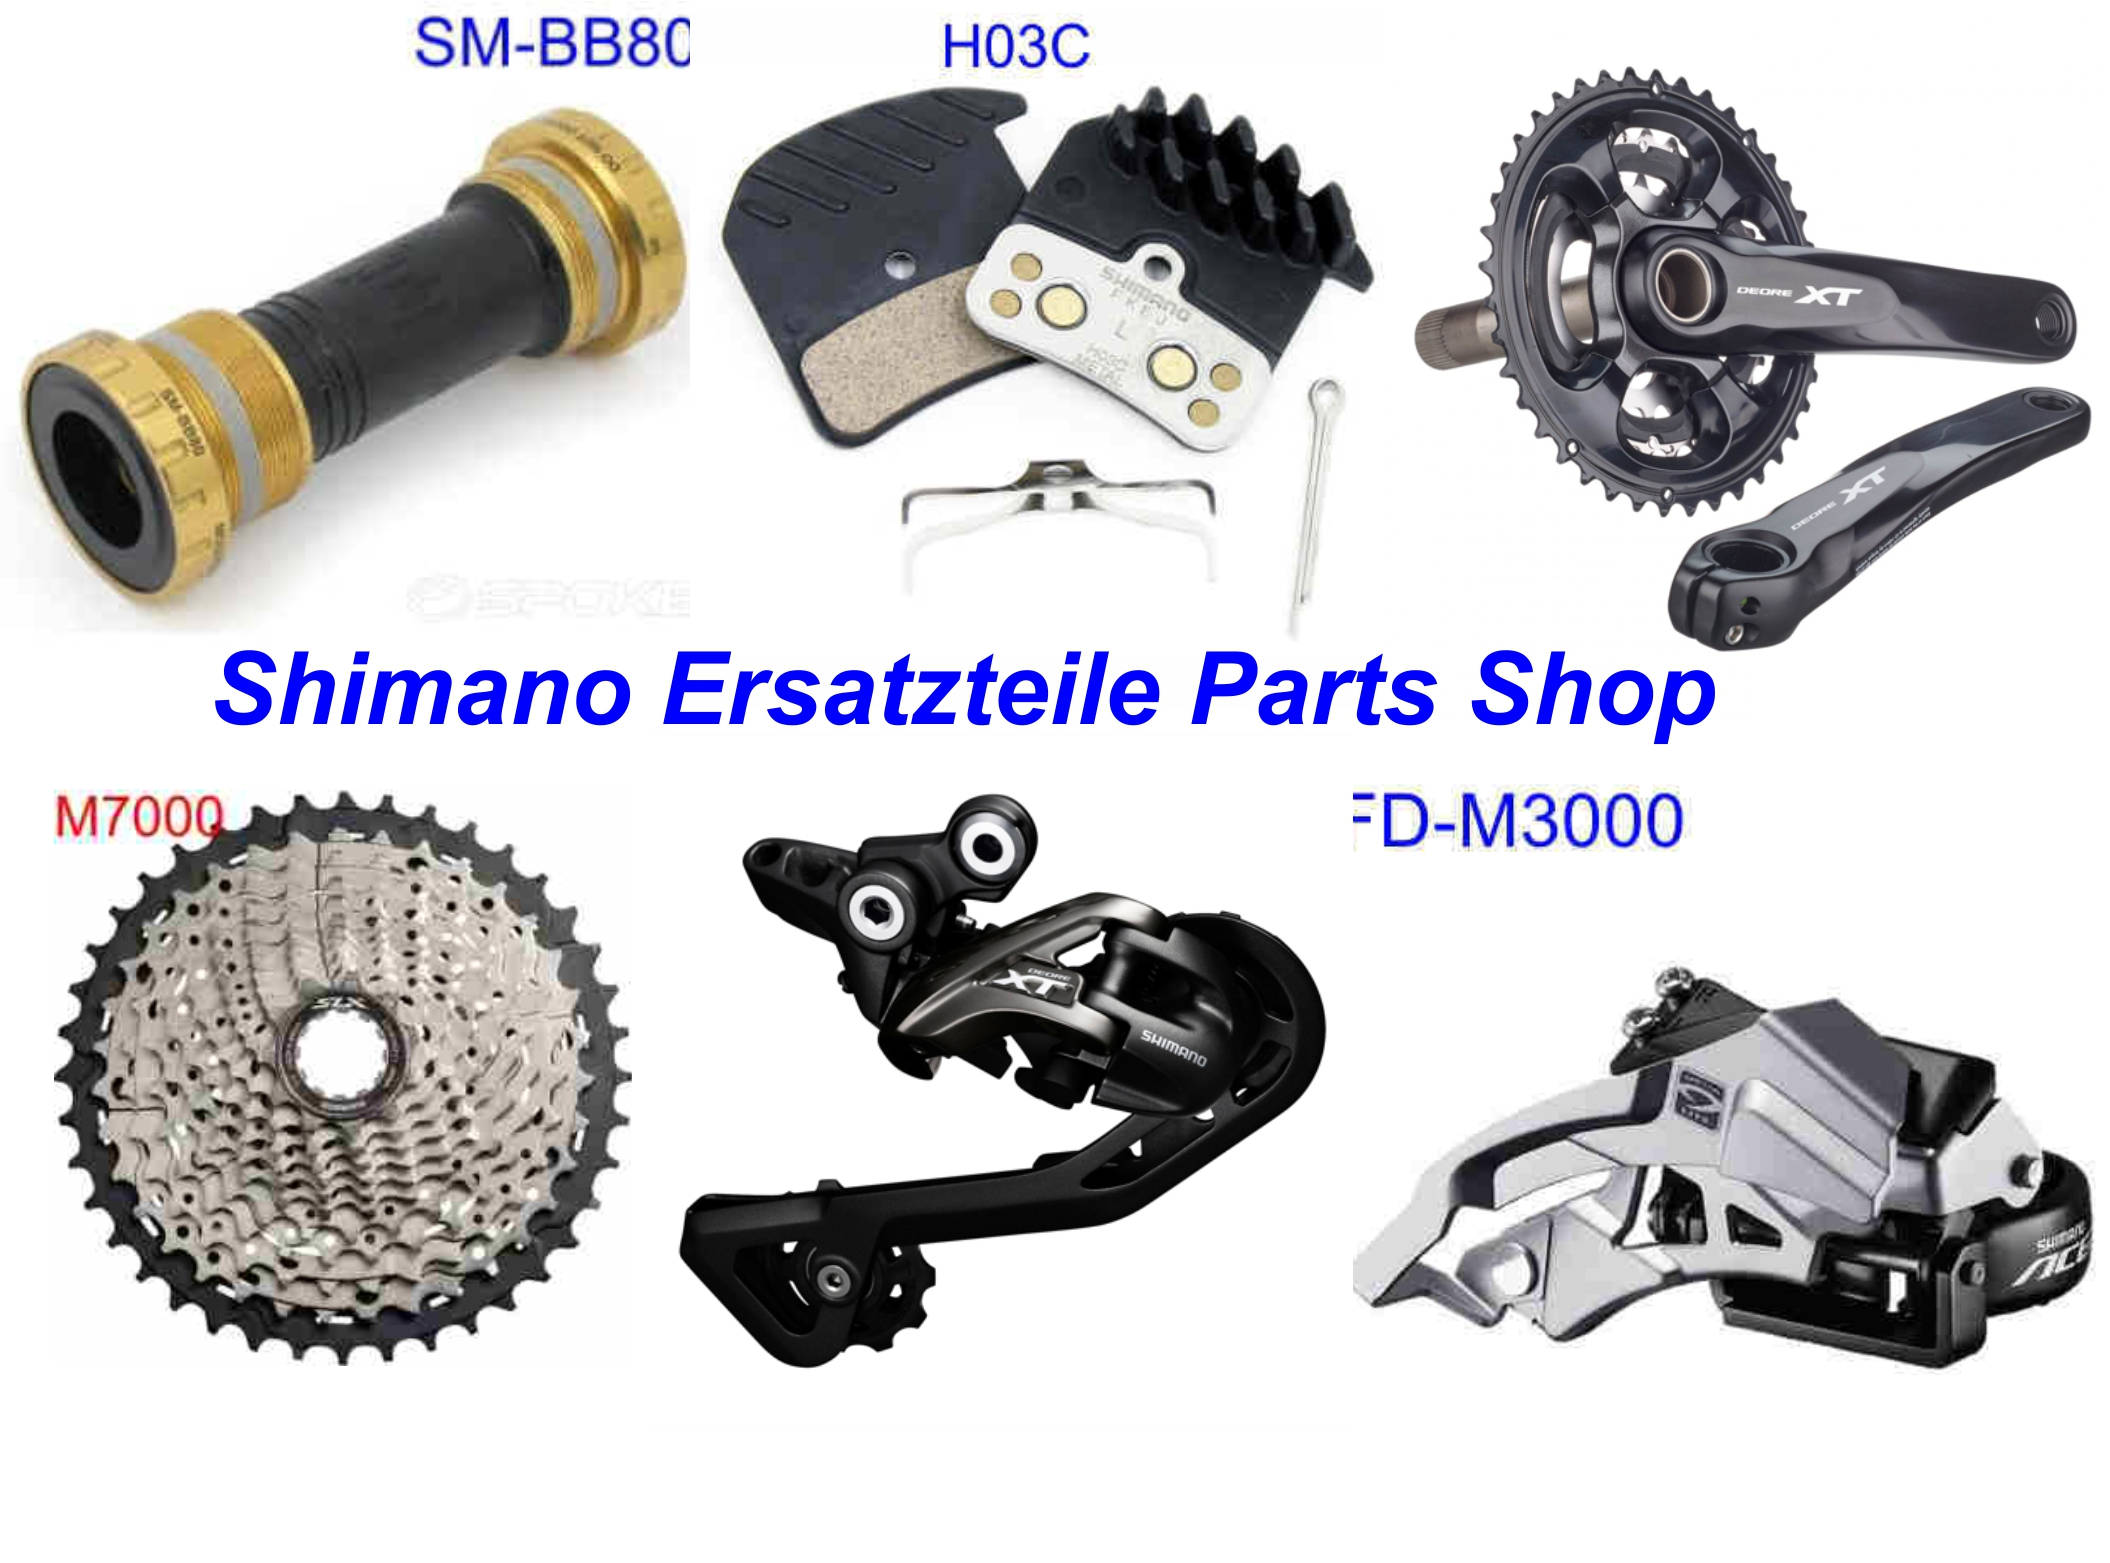 shimano bremsscheiben ersatzteile shop mountain bike. Black Bedroom Furniture Sets. Home Design Ideas